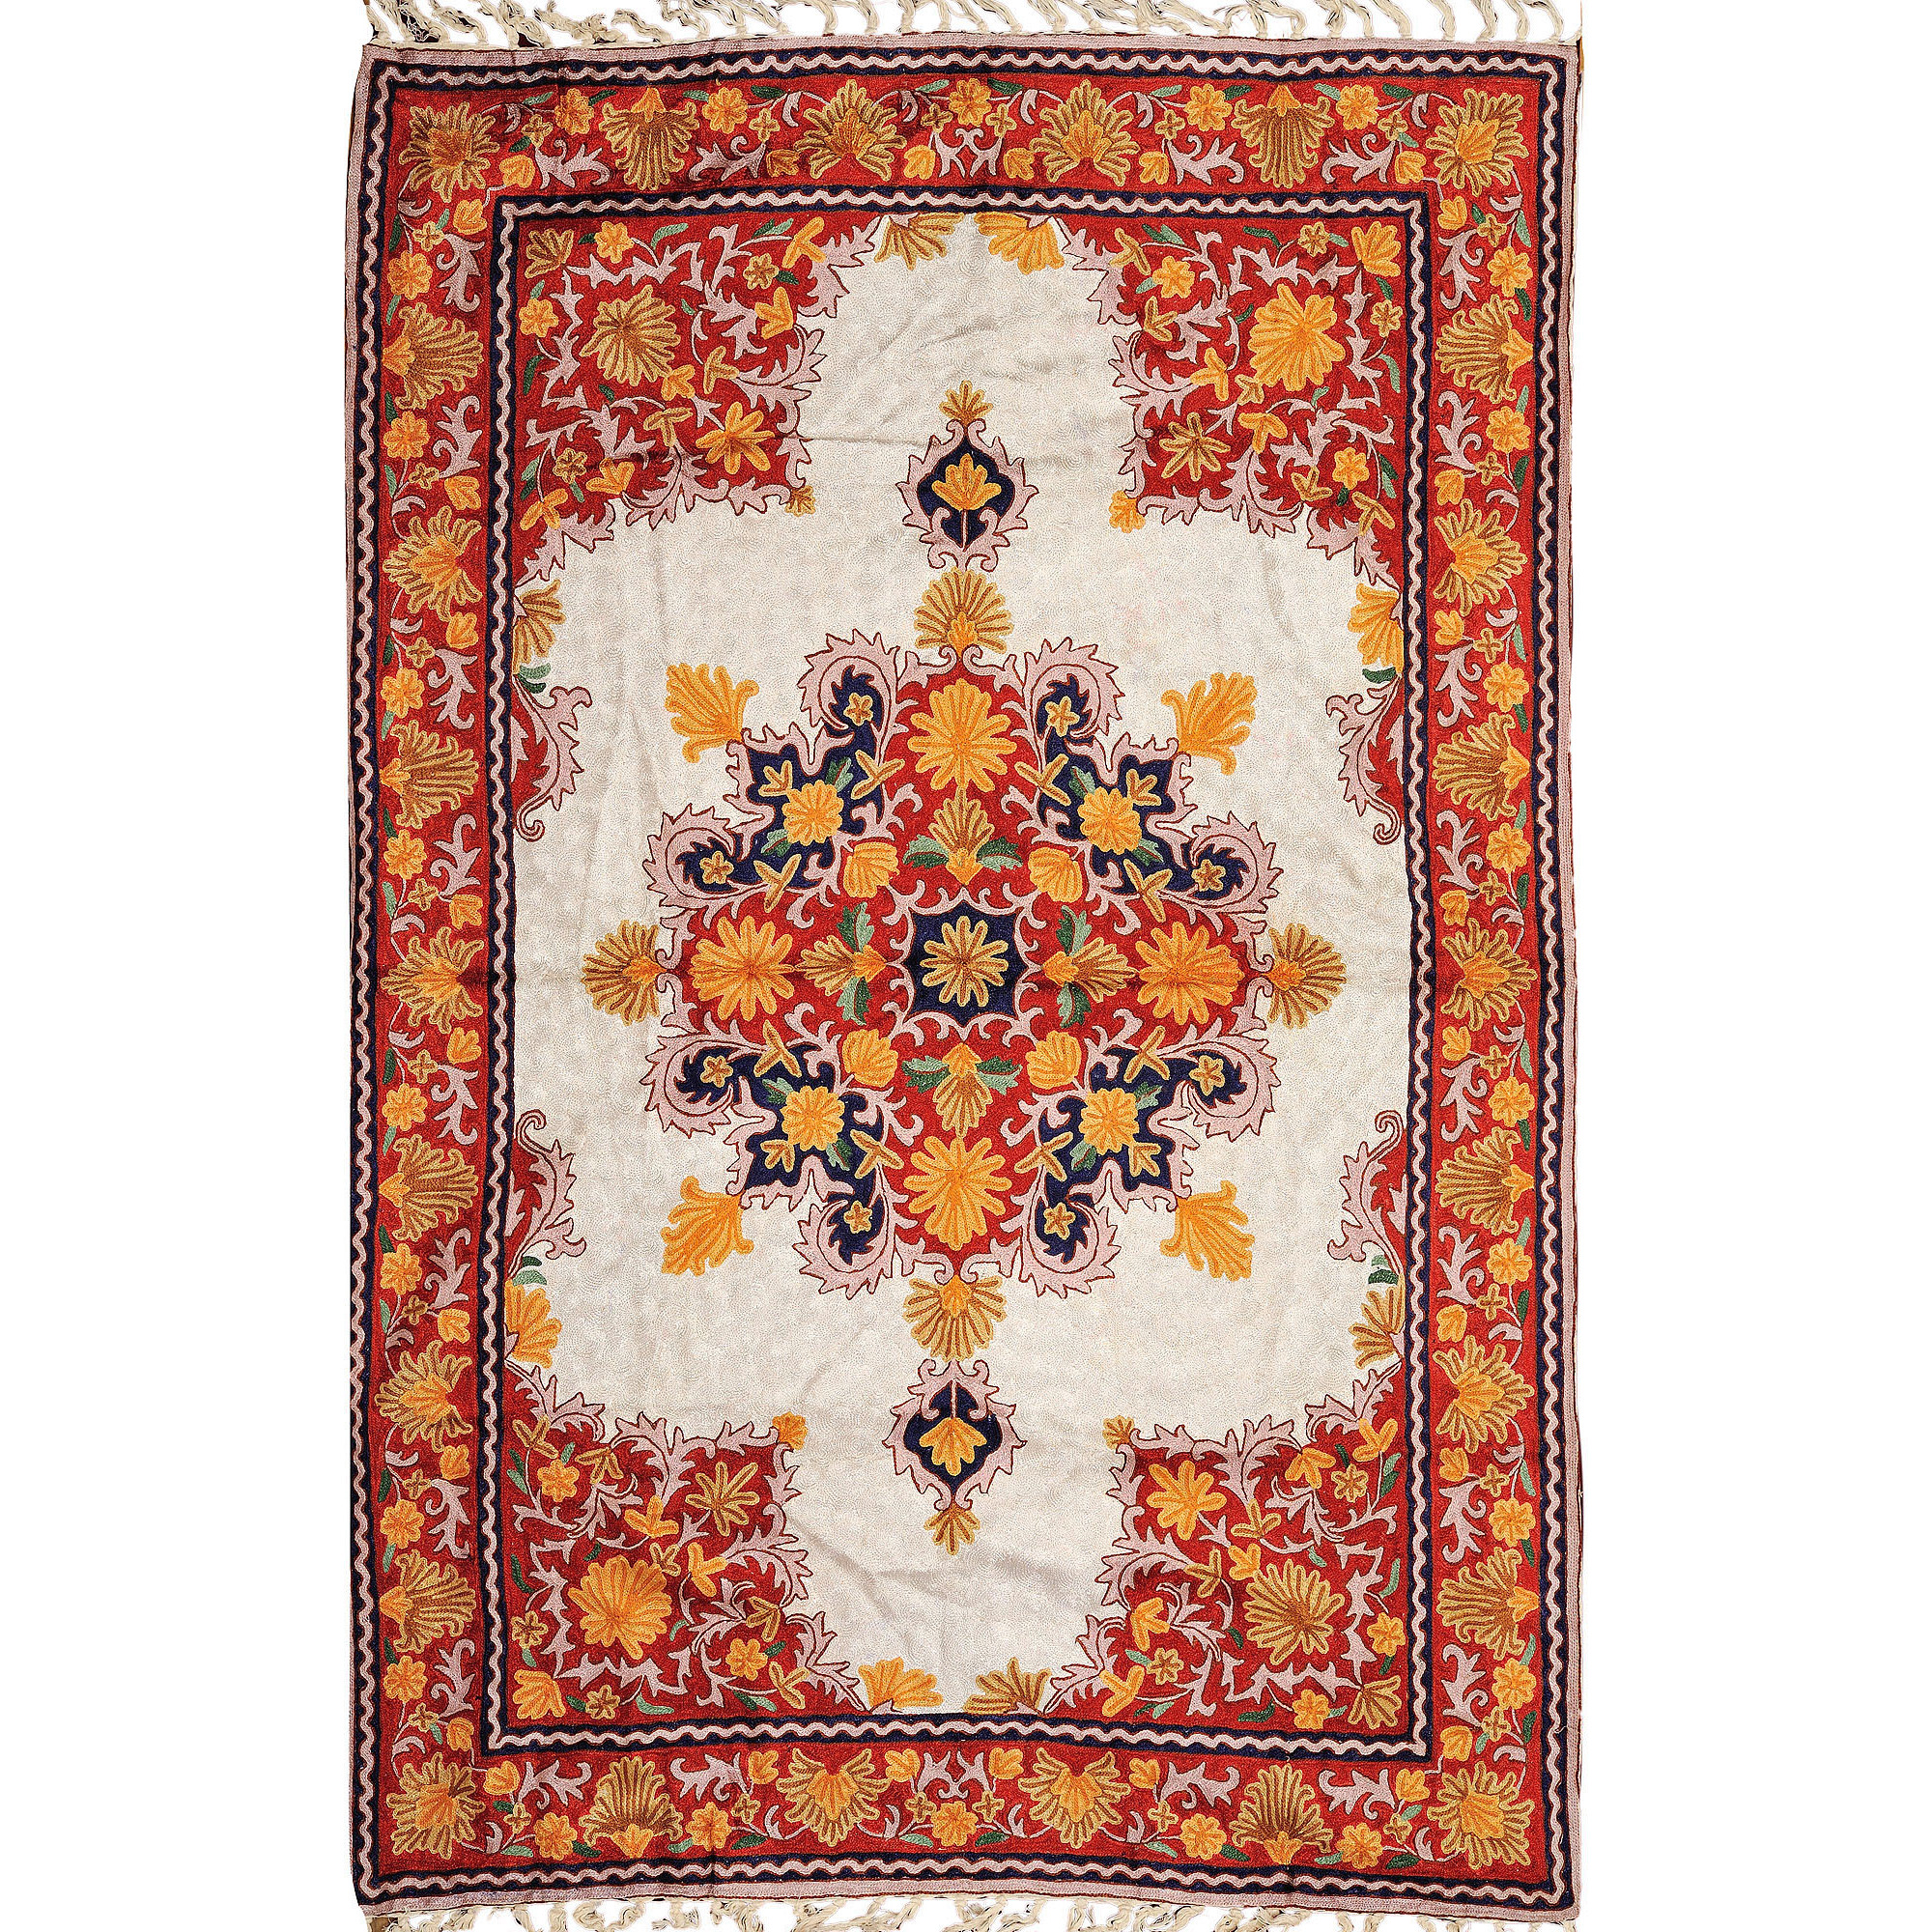 Ivory and Red Floral-Embroidered Asana Mat from Kashmir